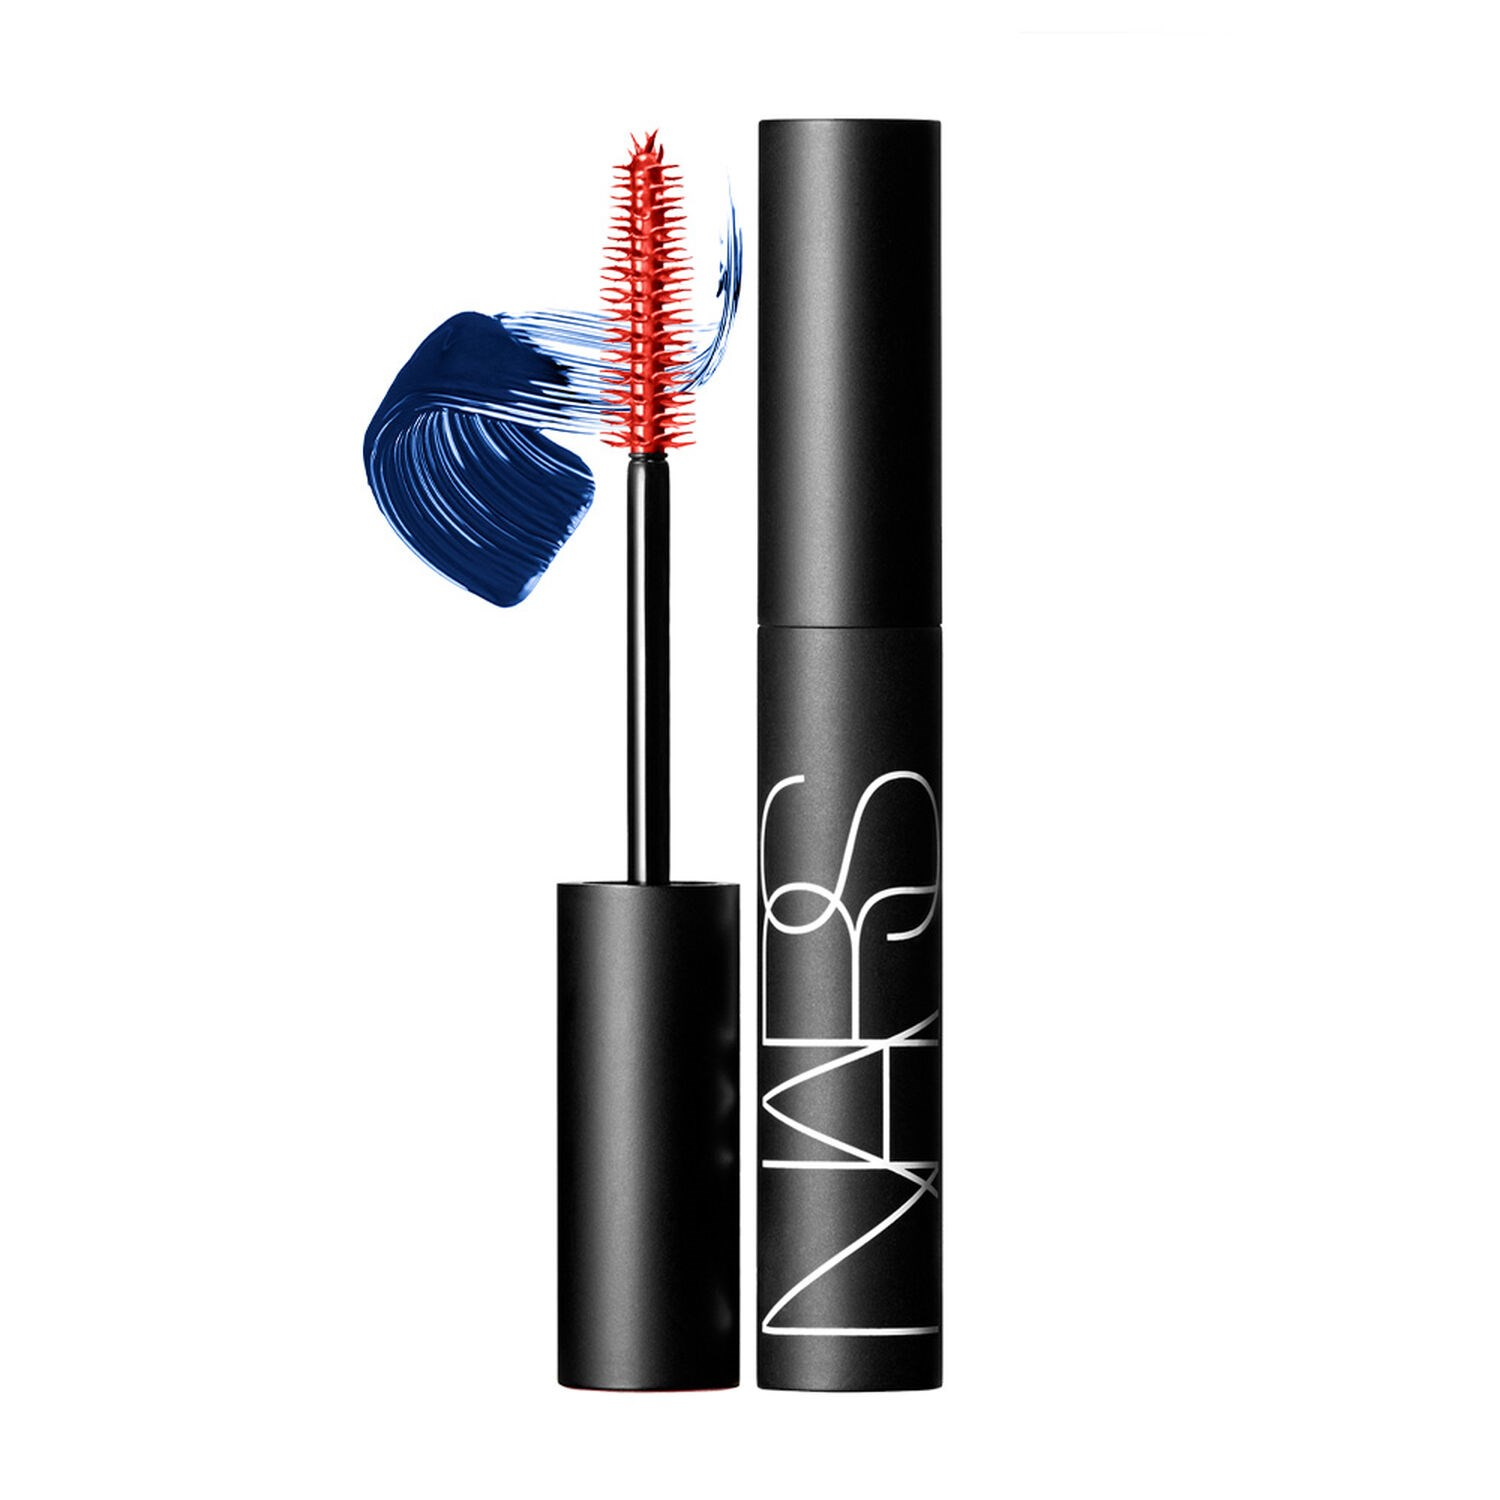 LIMITED EDITION AUDACIOUS MASCARA 1